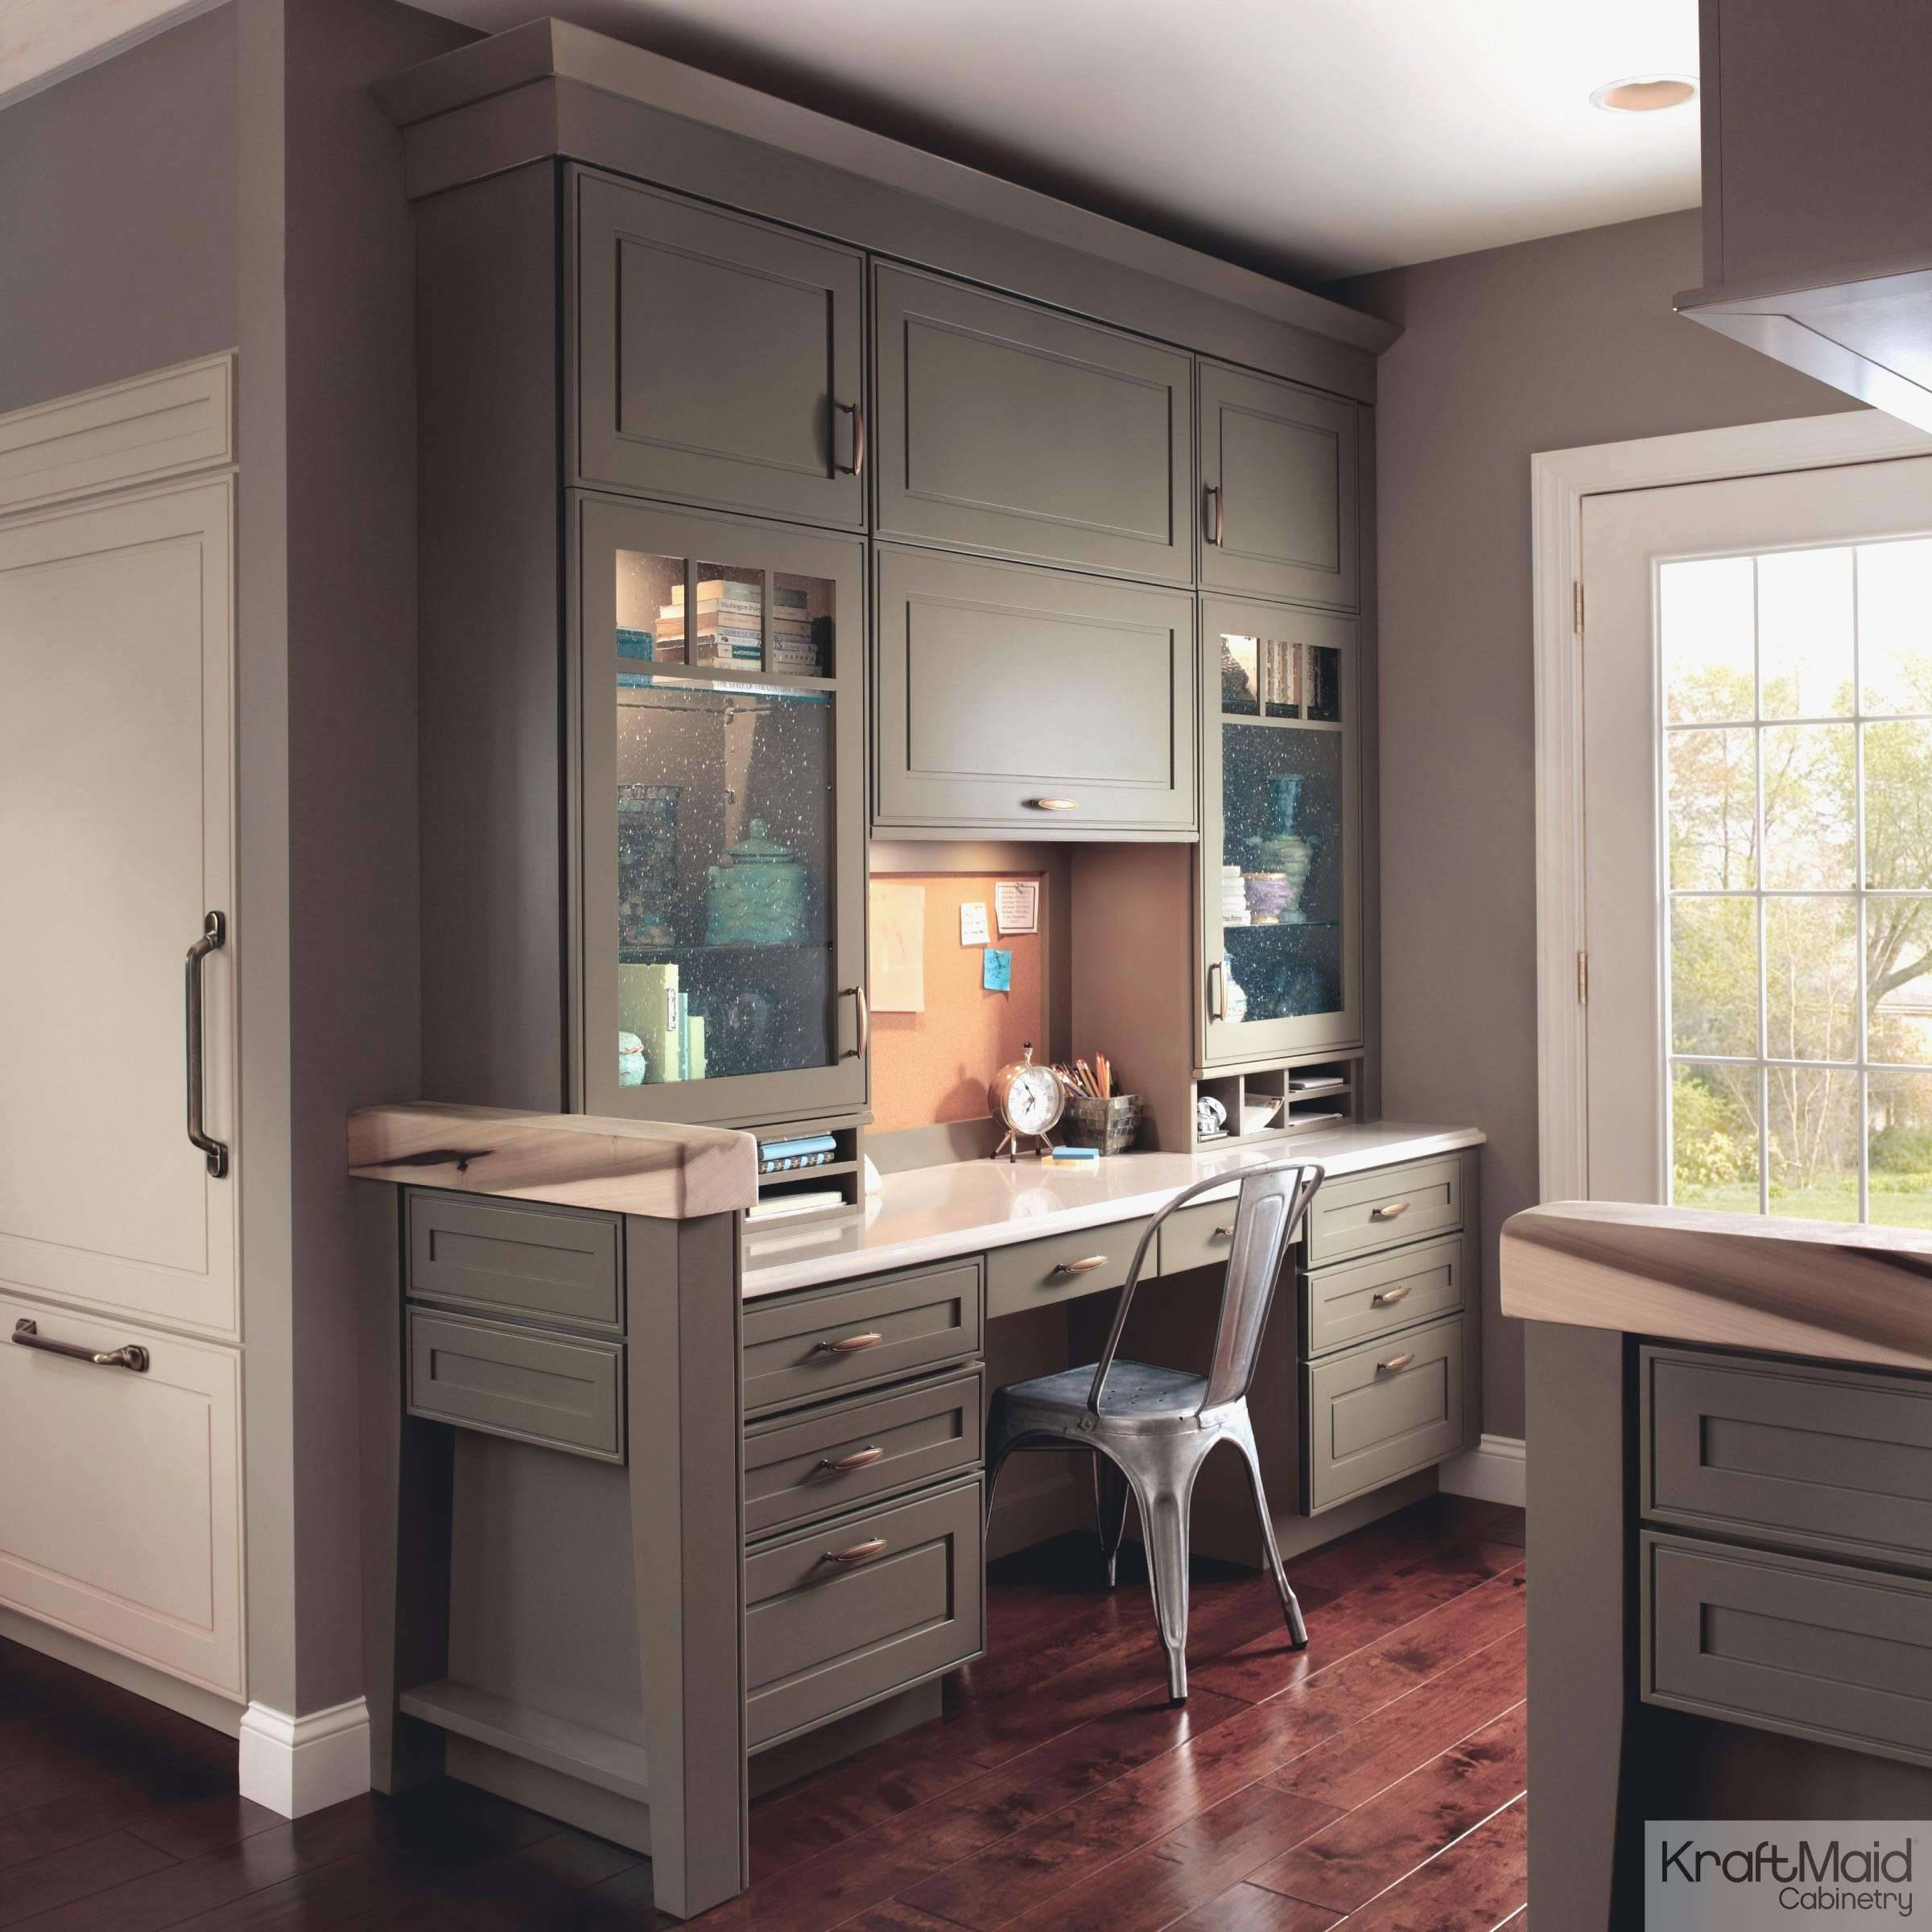 upper corner kitchen cabinet ideas elegant pickled maple kitchen cabinets awesome kitchen cabinet 0d kitchen of upper corner kitchen cabinet ideas